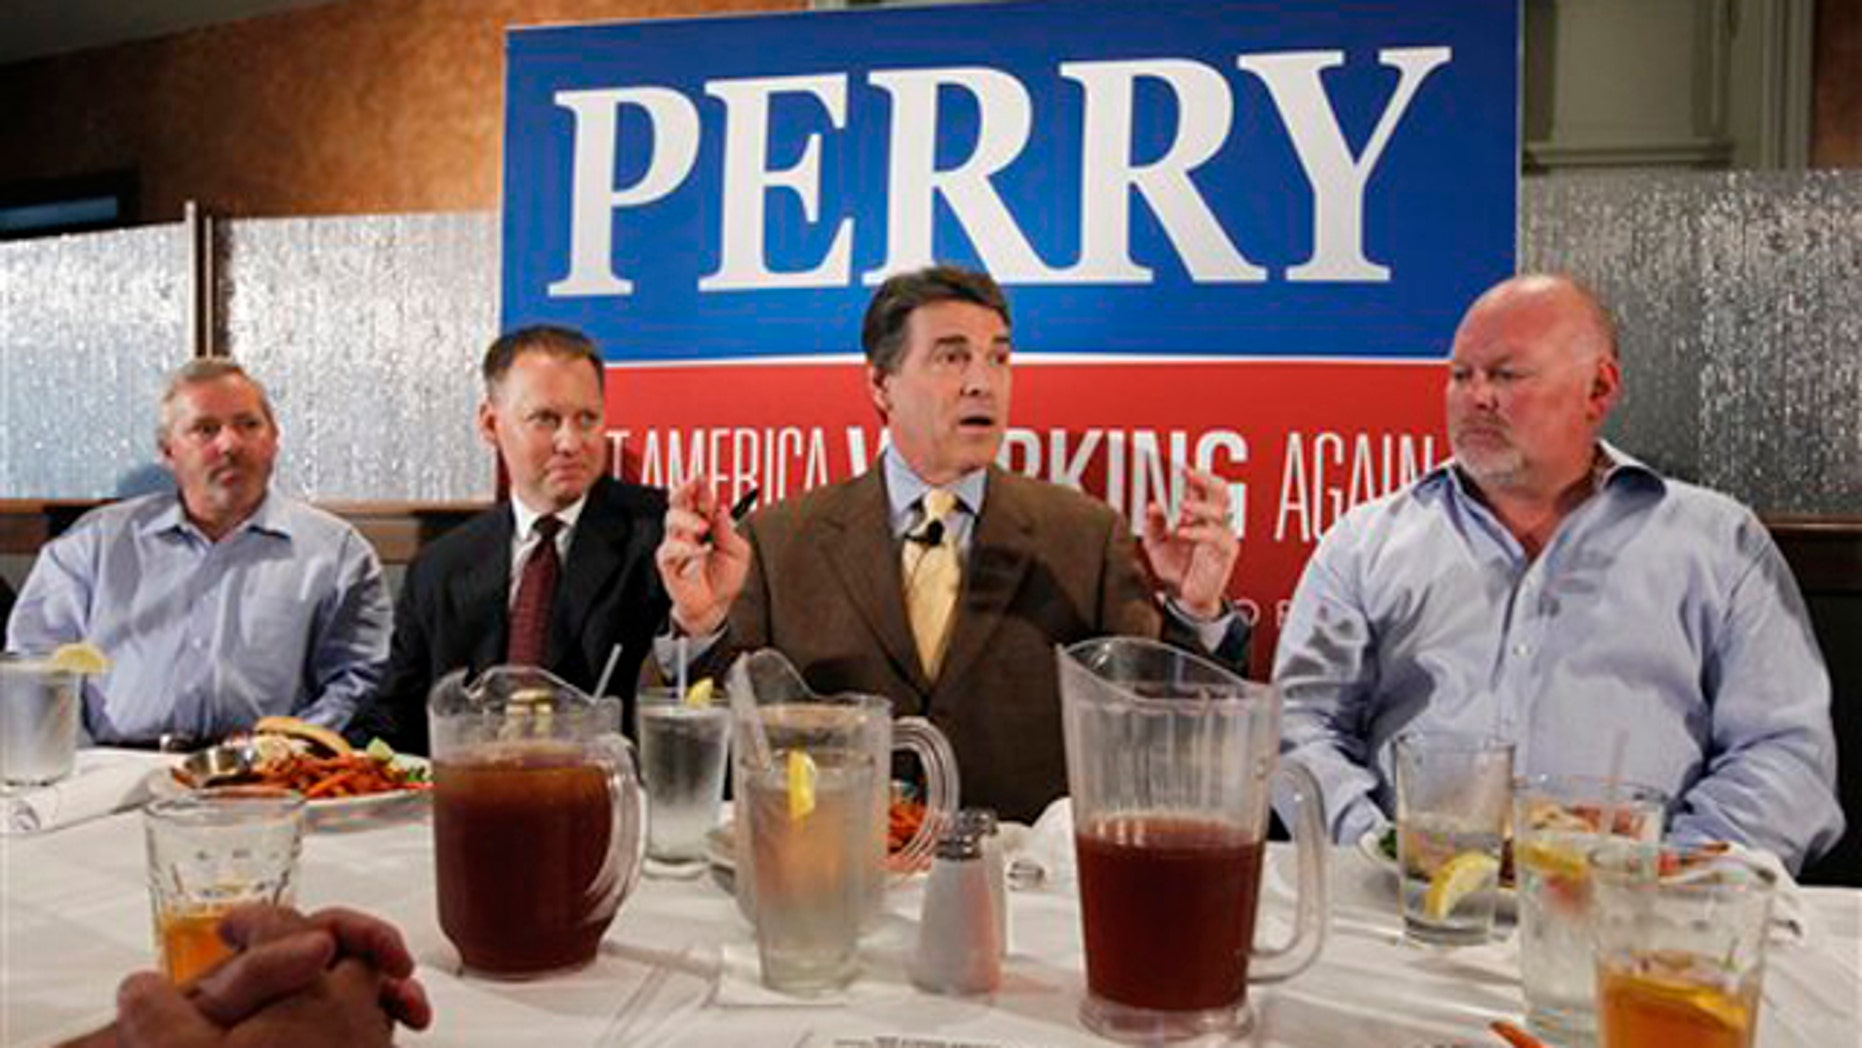 Texas Gov. Rick Perry meets with business leaders at a lunch in Dubuque, Iowa, Aug. 16.